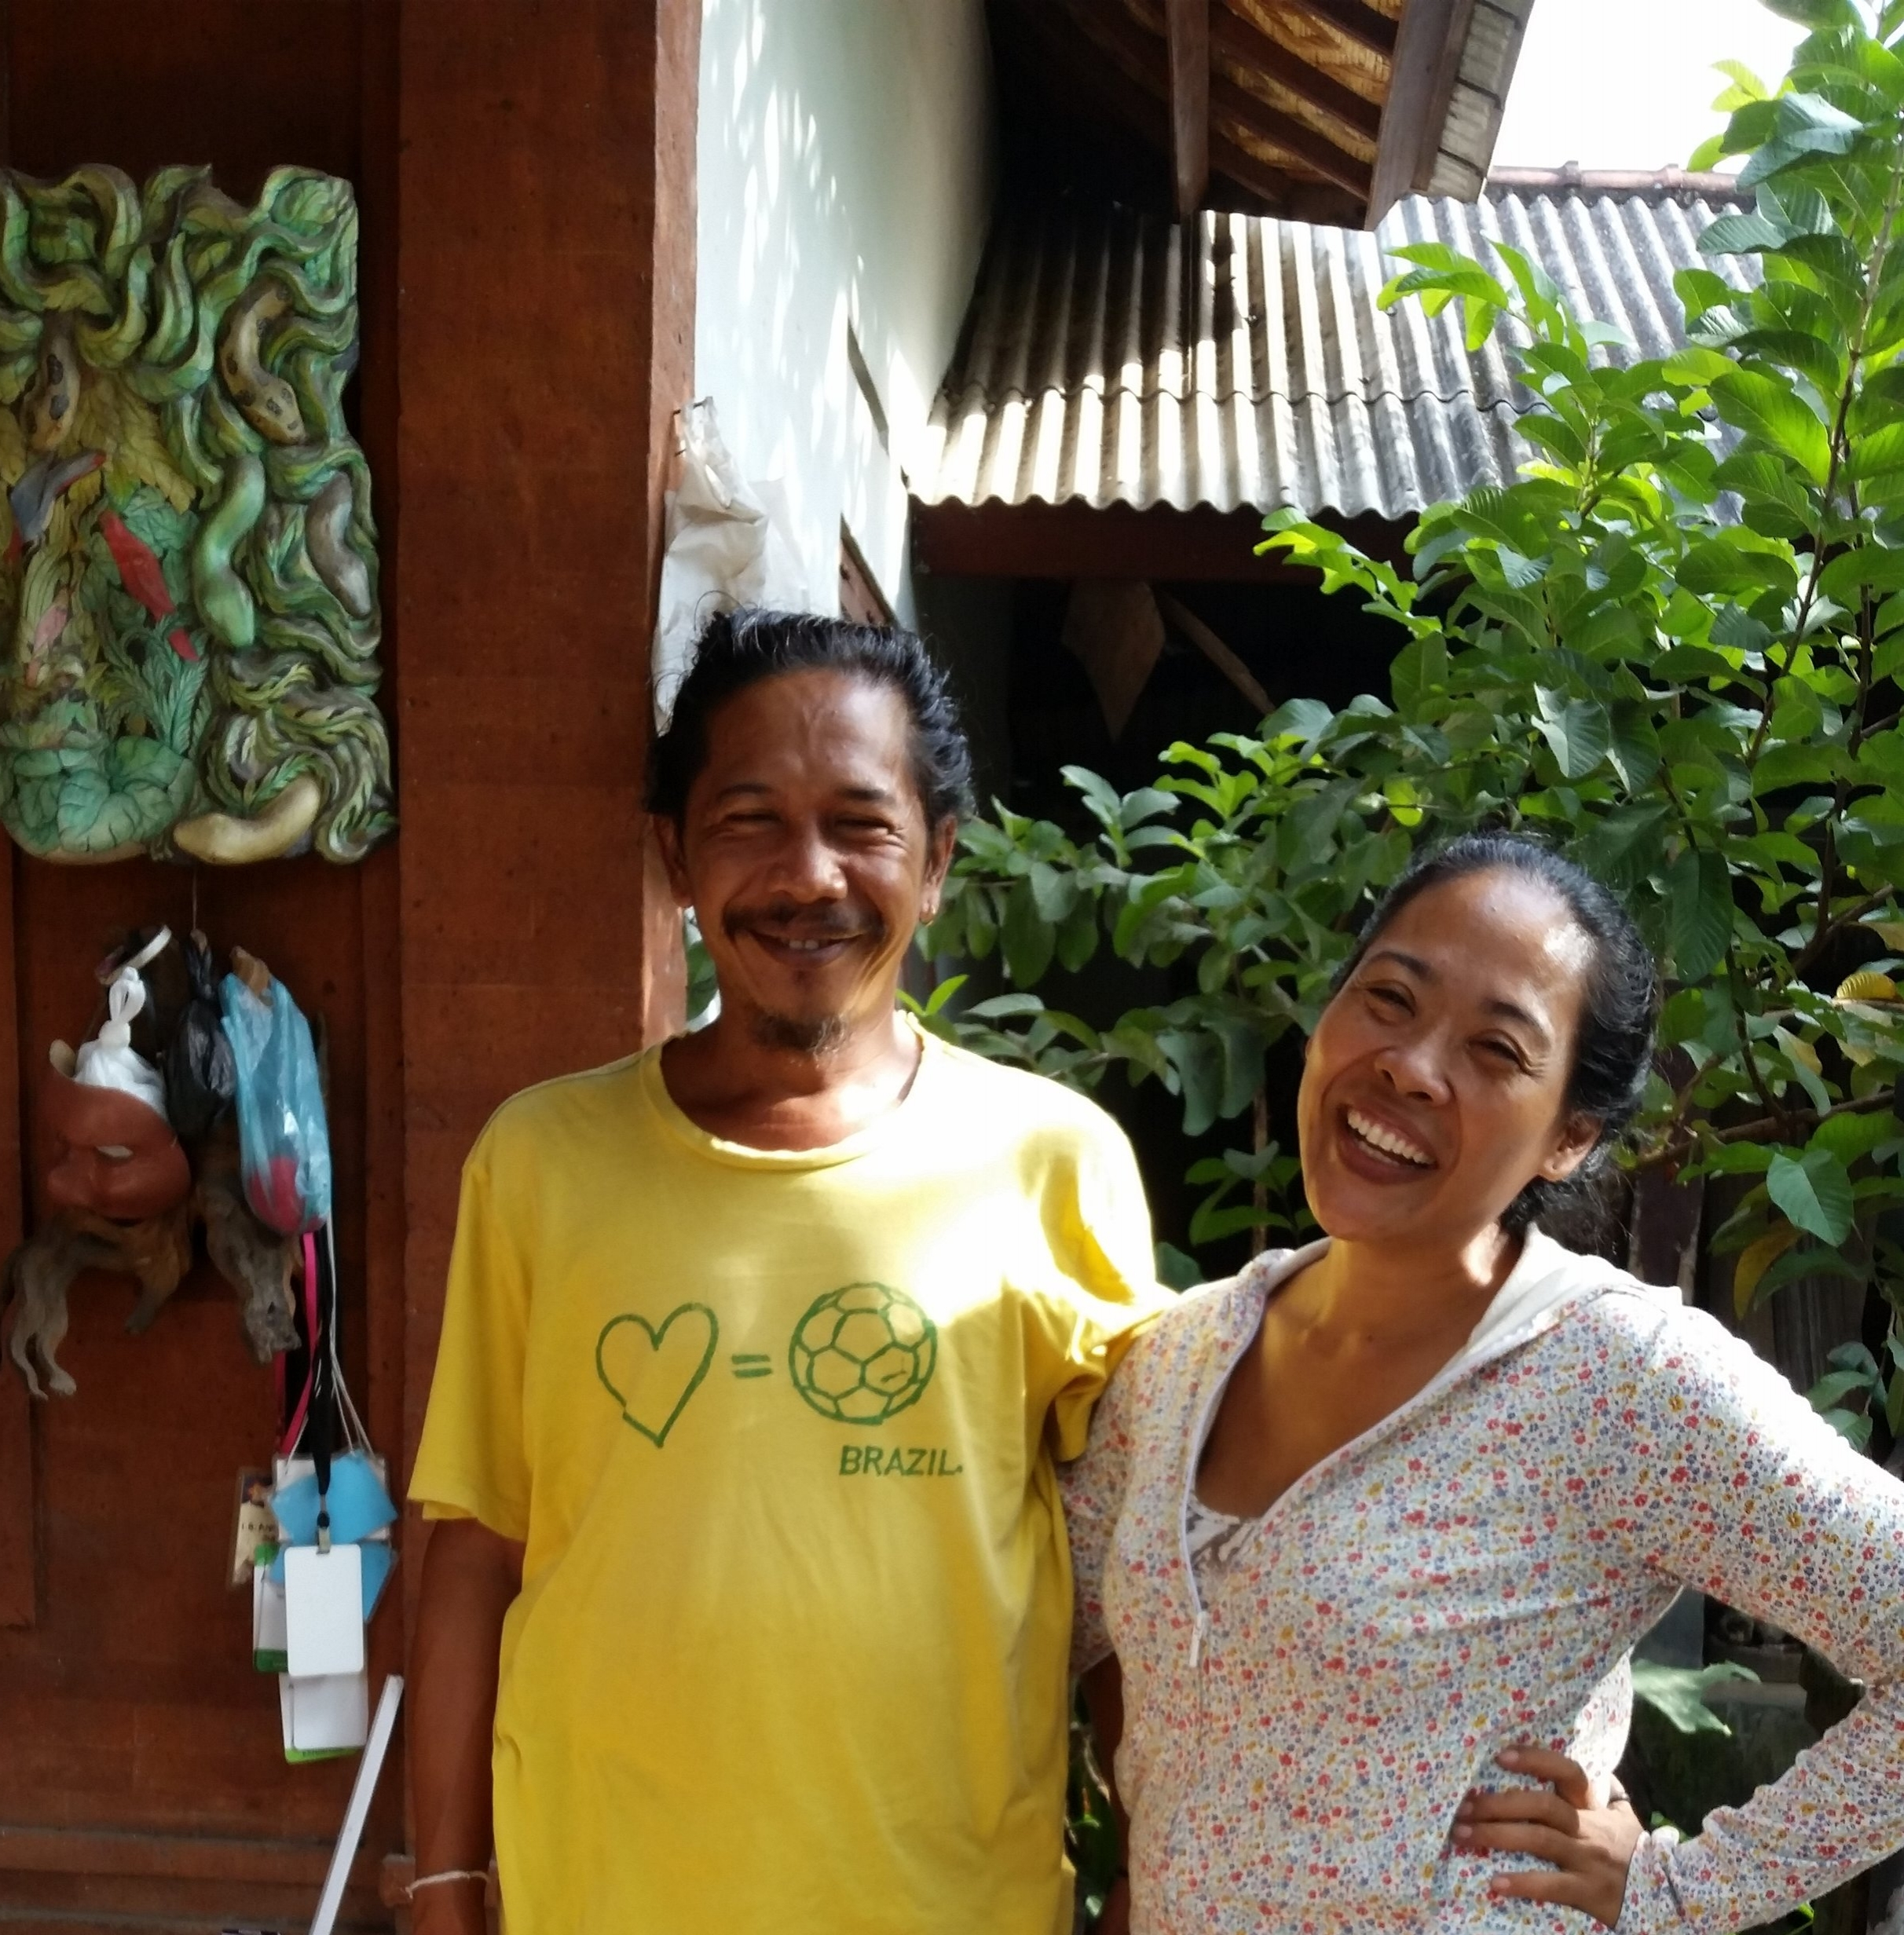 My most gracious hosts, Anom and Dayu. I was treated so well.